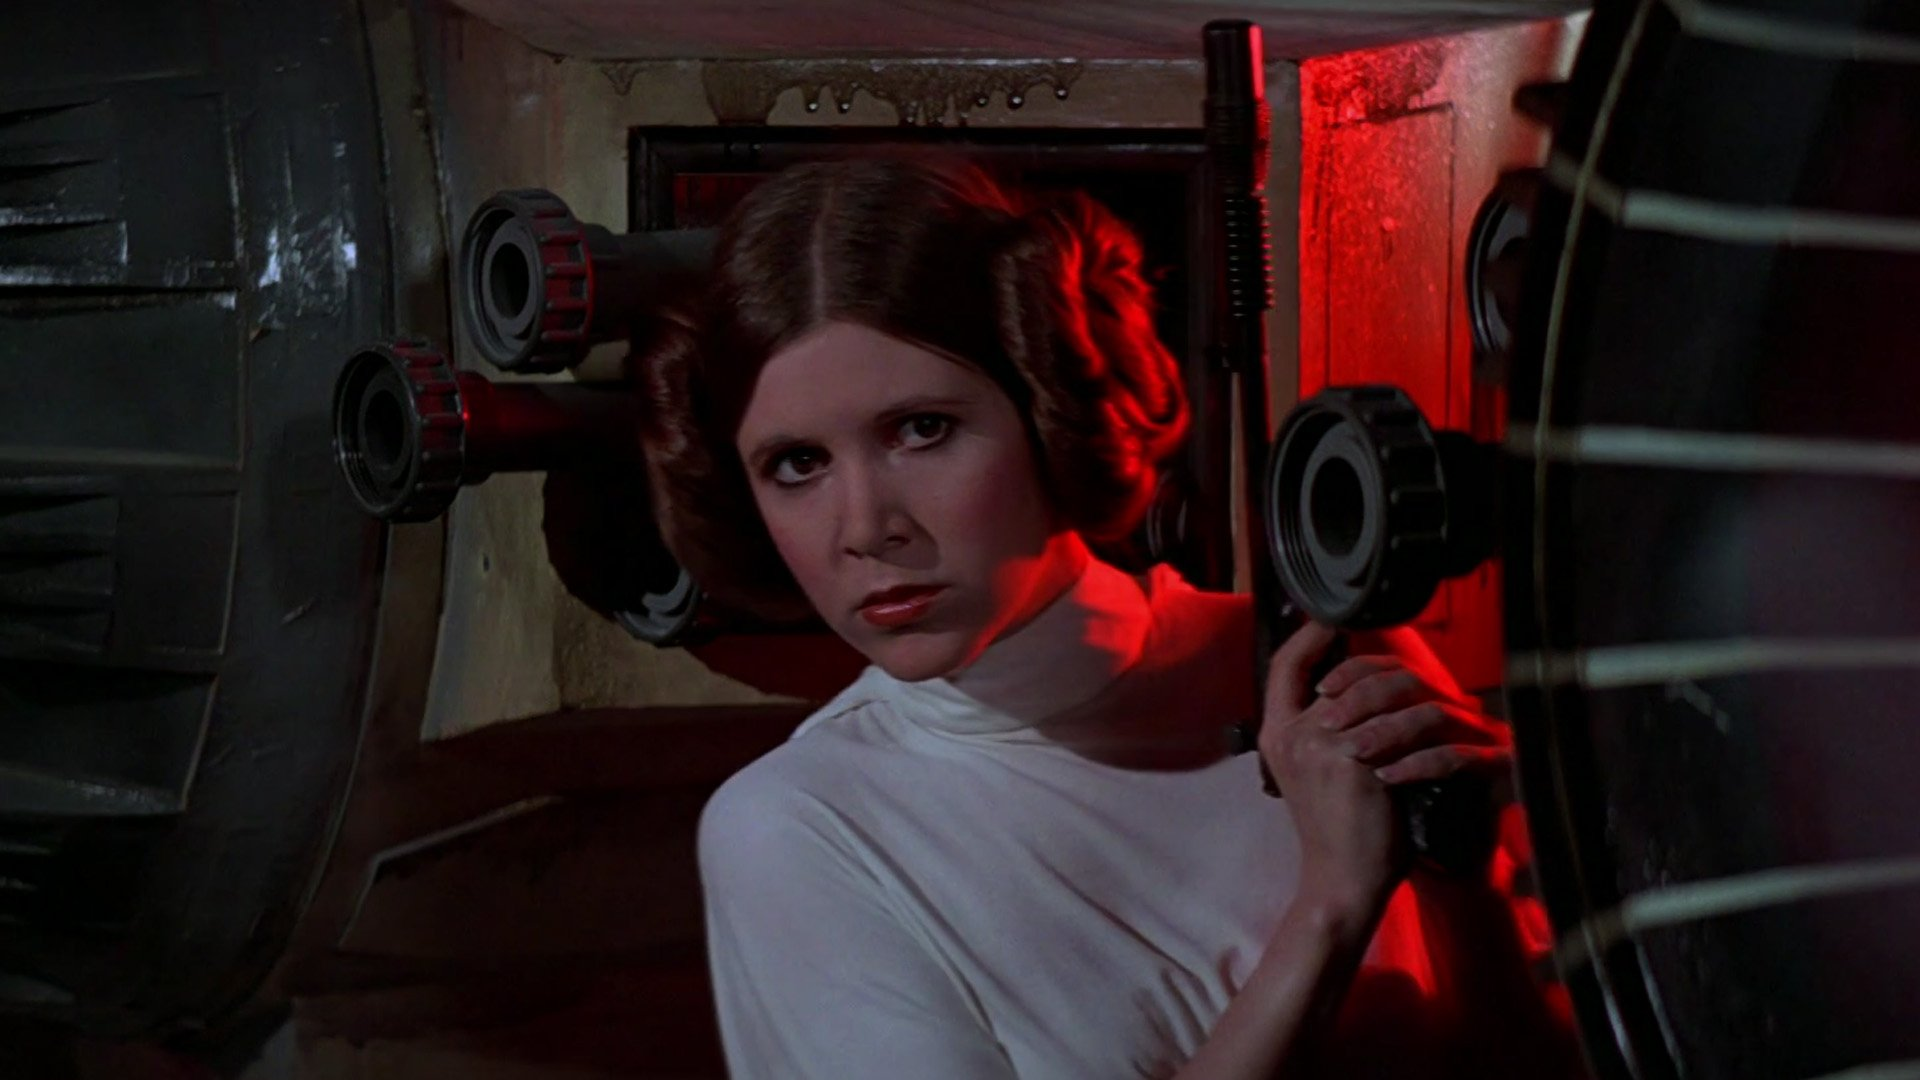 carrie-fisher-sent-a-cow-tongue-to-a-hollywood-sexual-predator-social.jpg